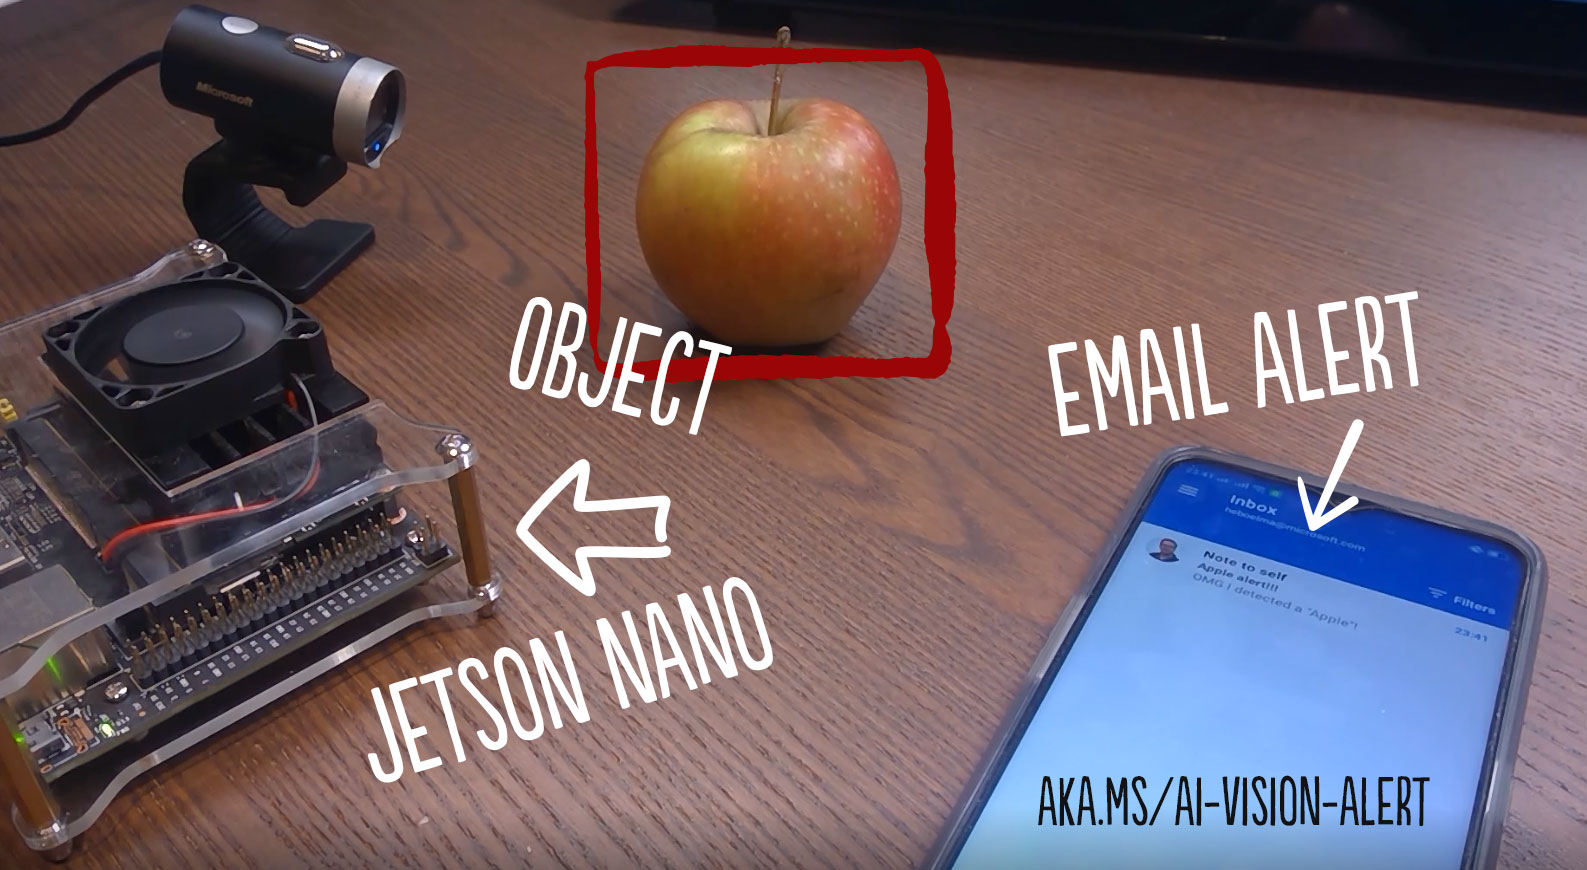 Create your own vision alerting system with IoT Edge, Azure Custom Vision and a Jetson Nano